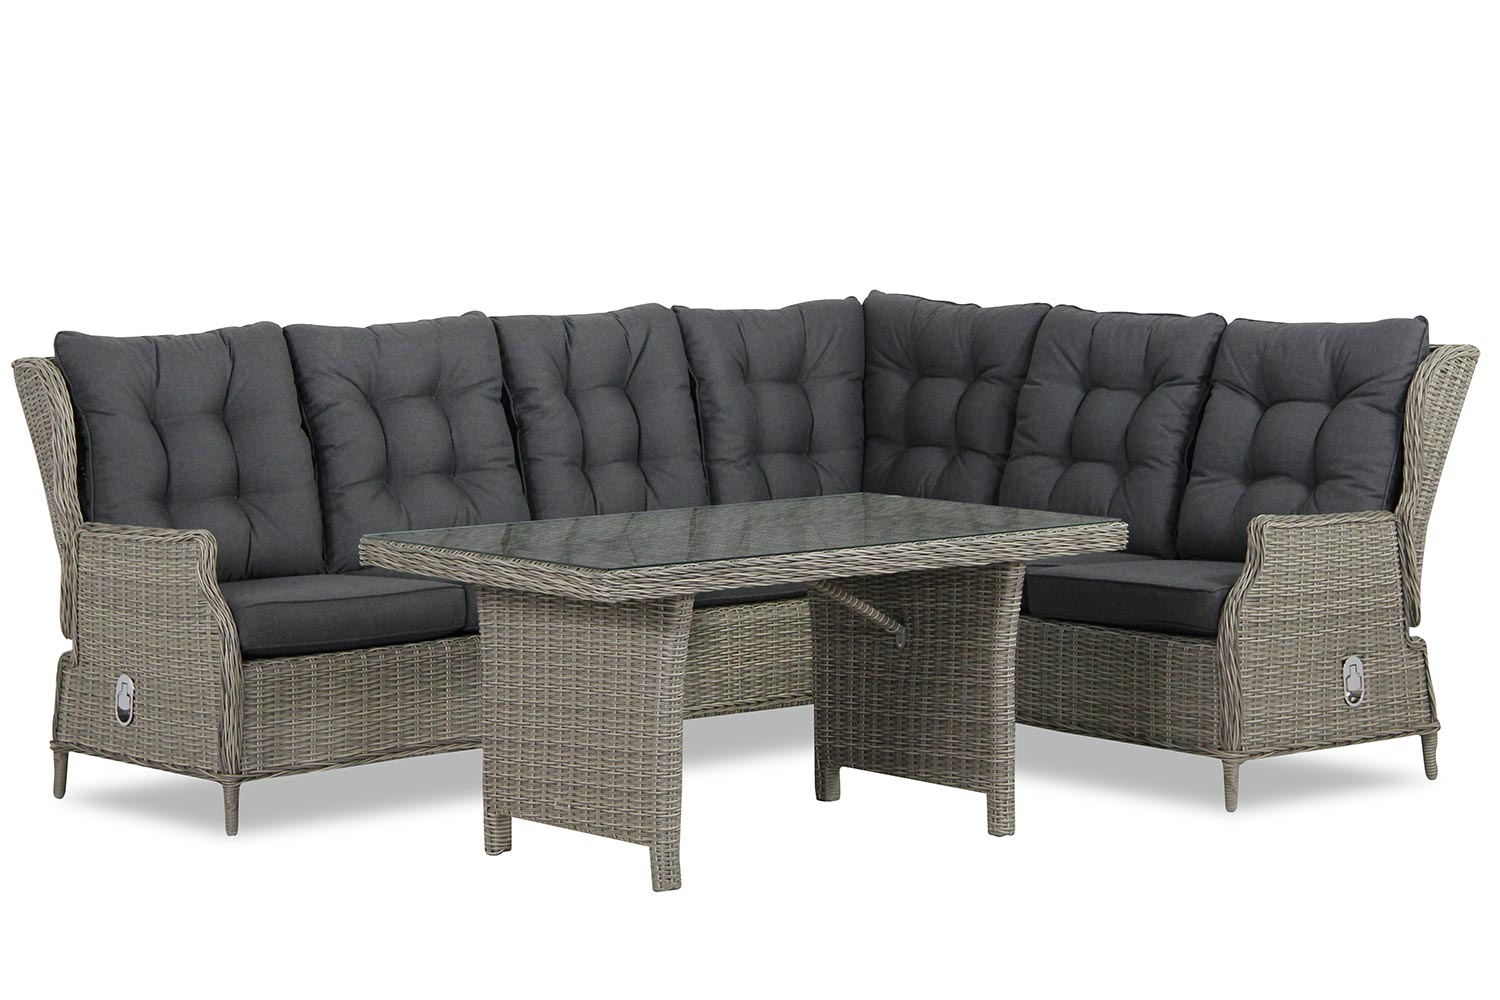 Garden Collections New Castle dining loungeset 5-delig